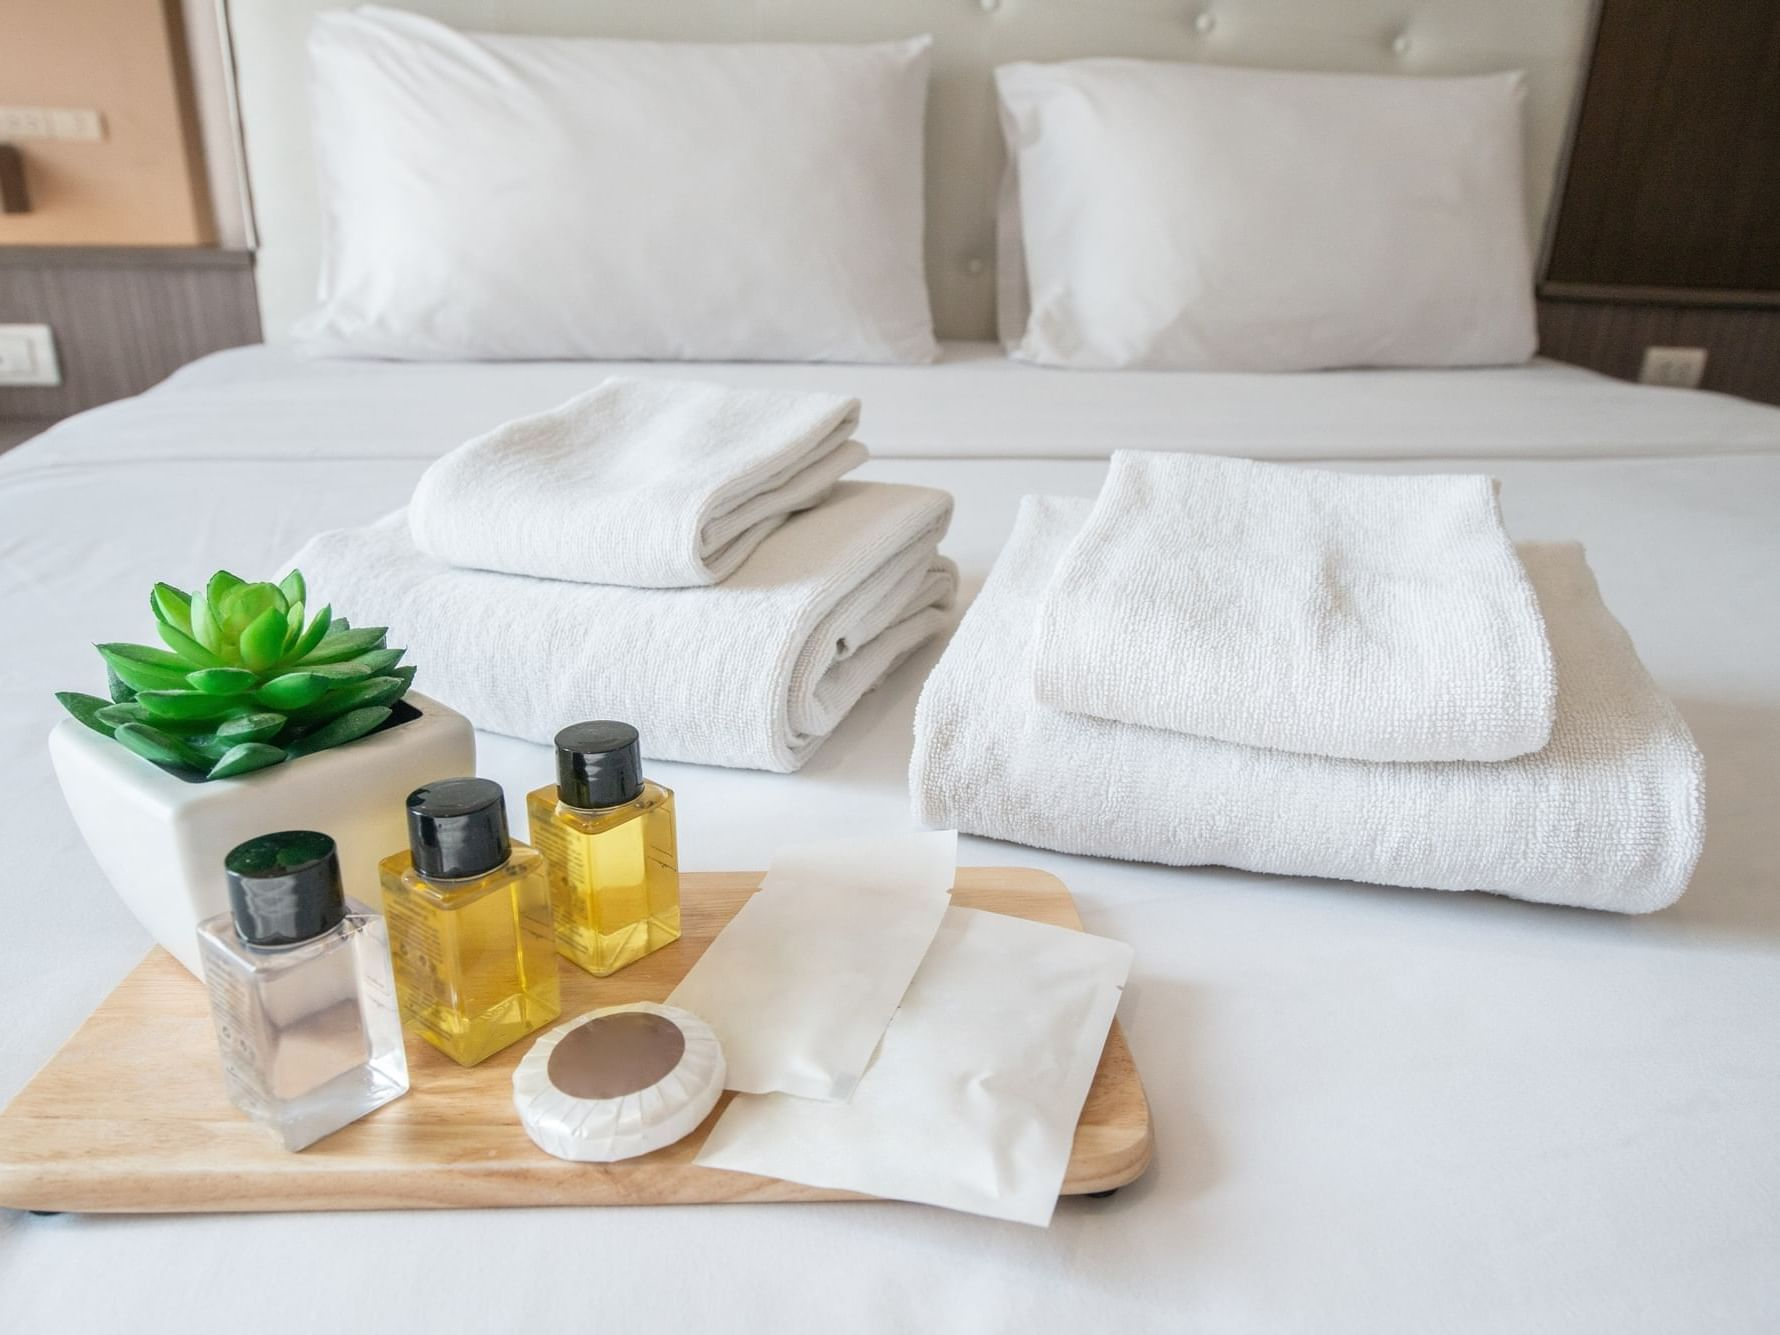 Toiletries and towels on bed at Daydream Island Resort